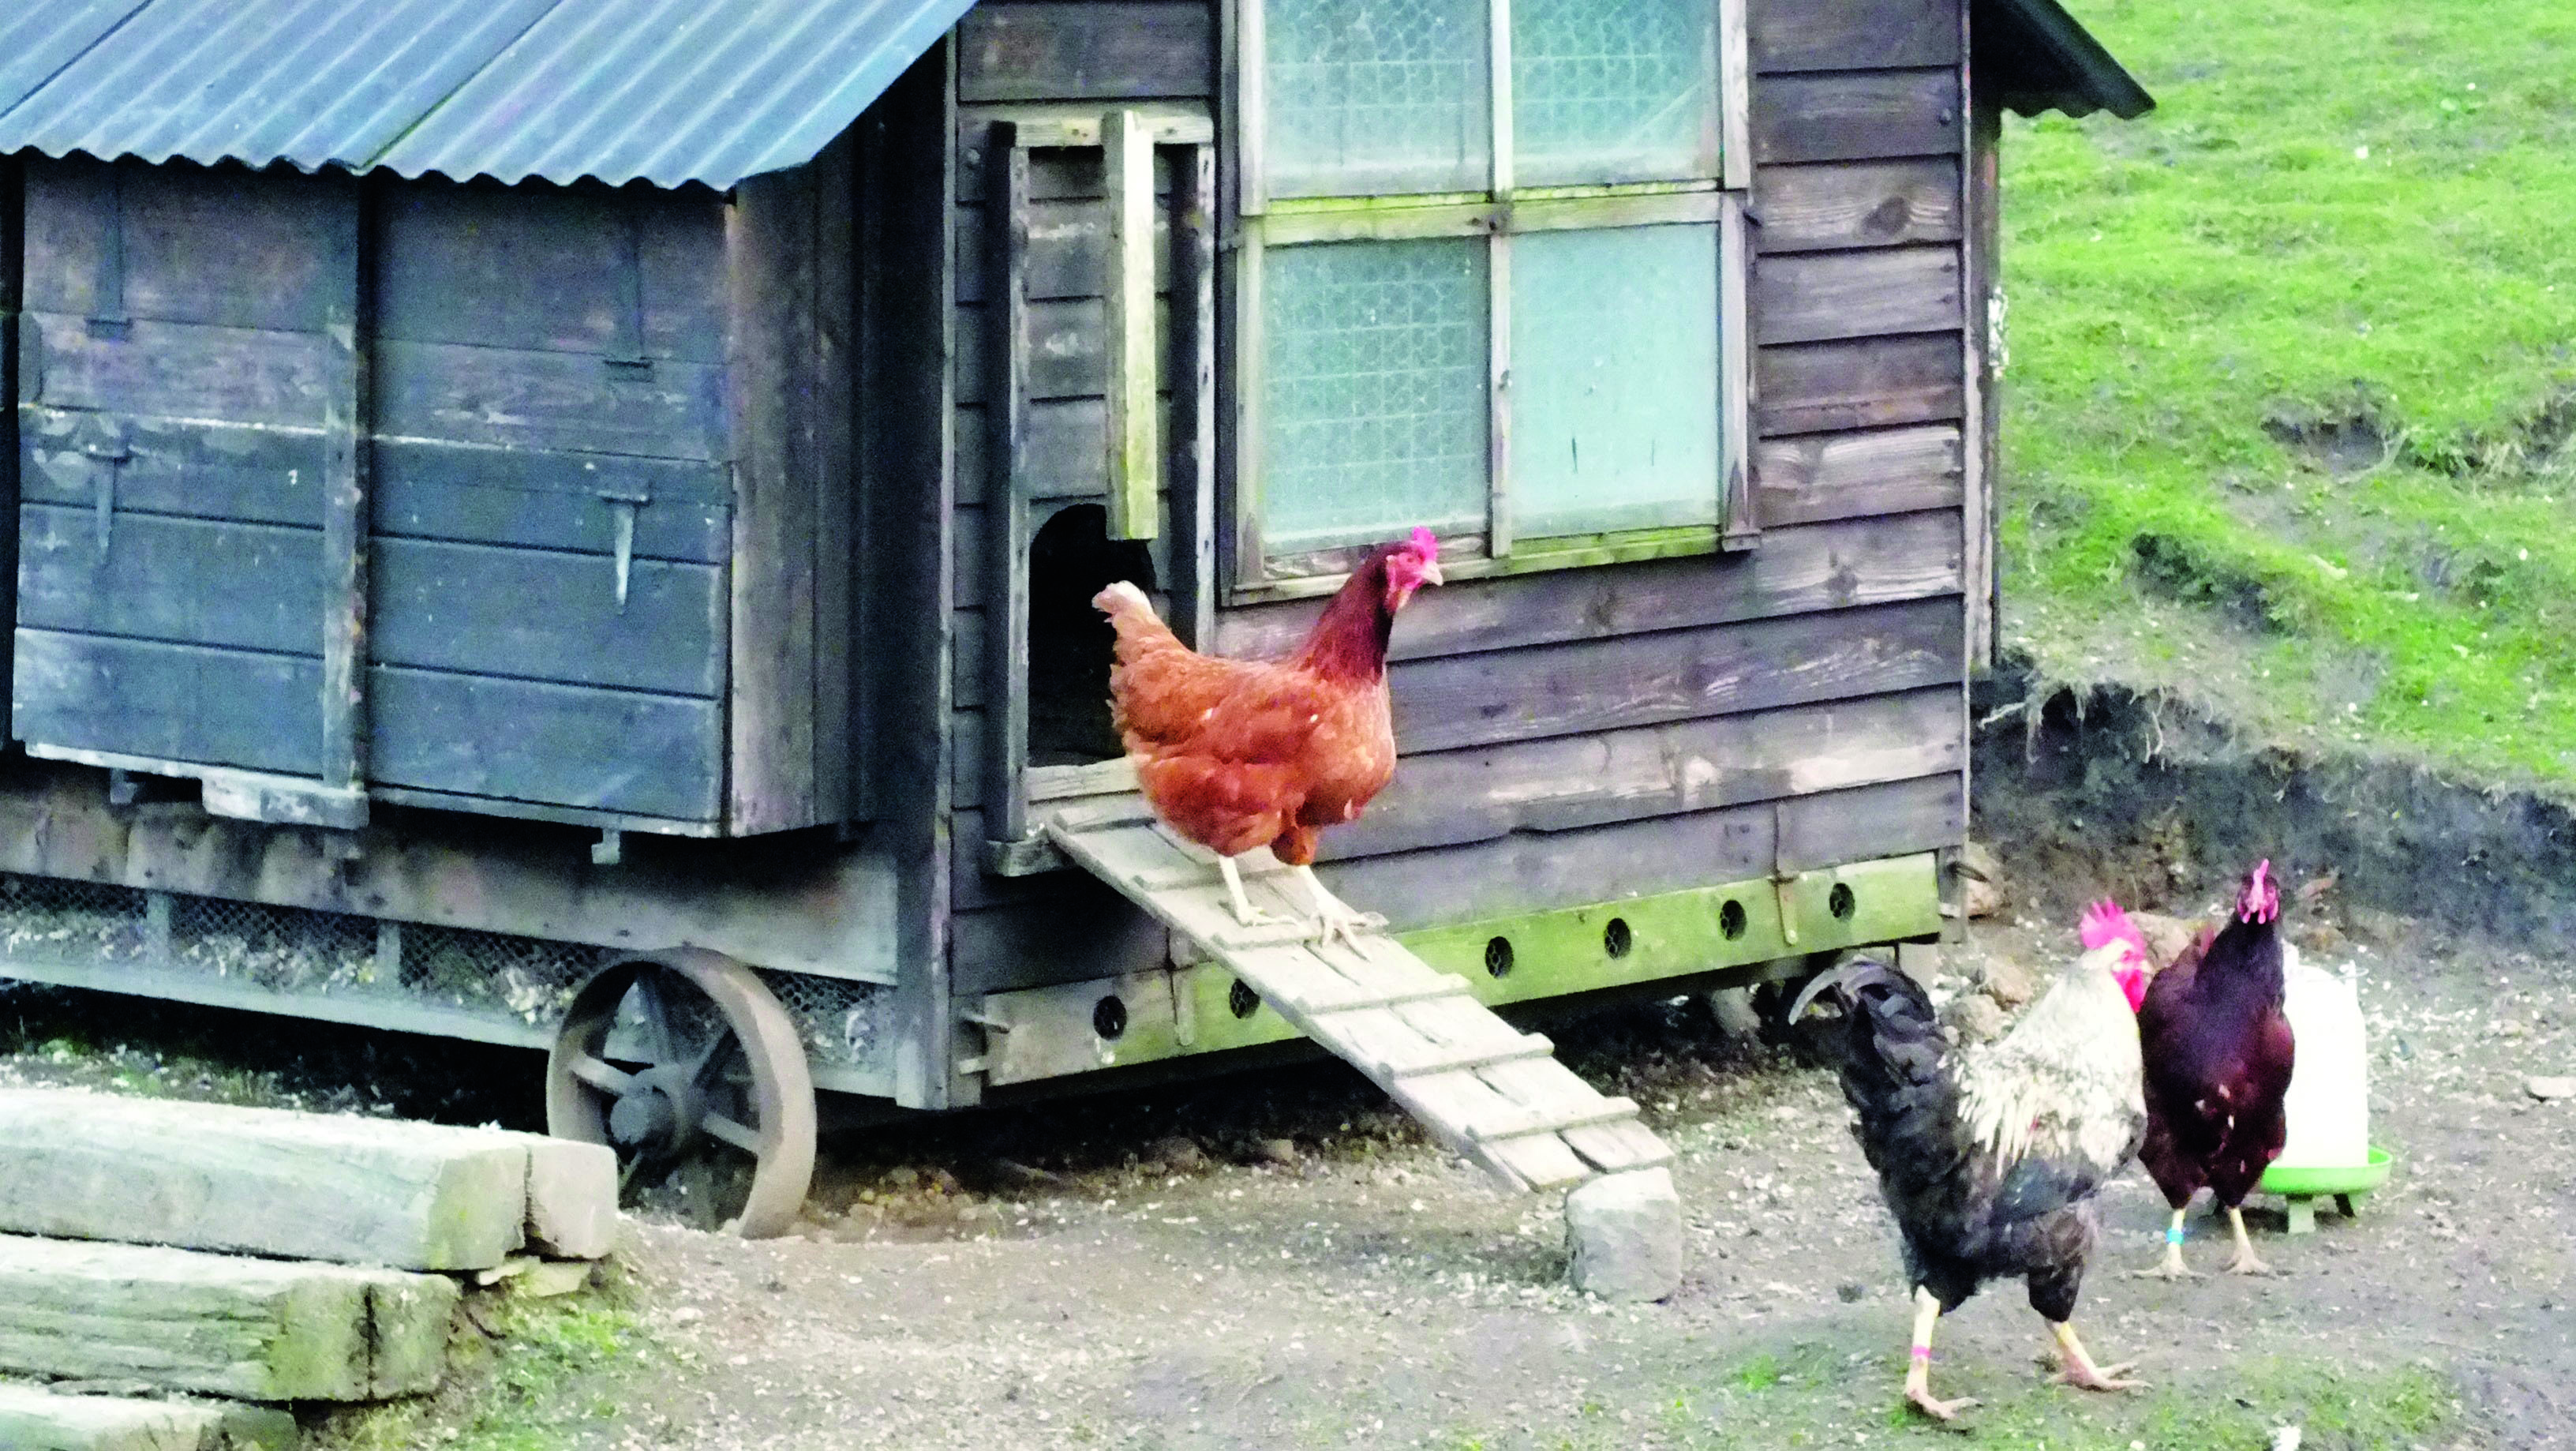 Choosing the right home for your chickens - innovative mobile home henhouse design